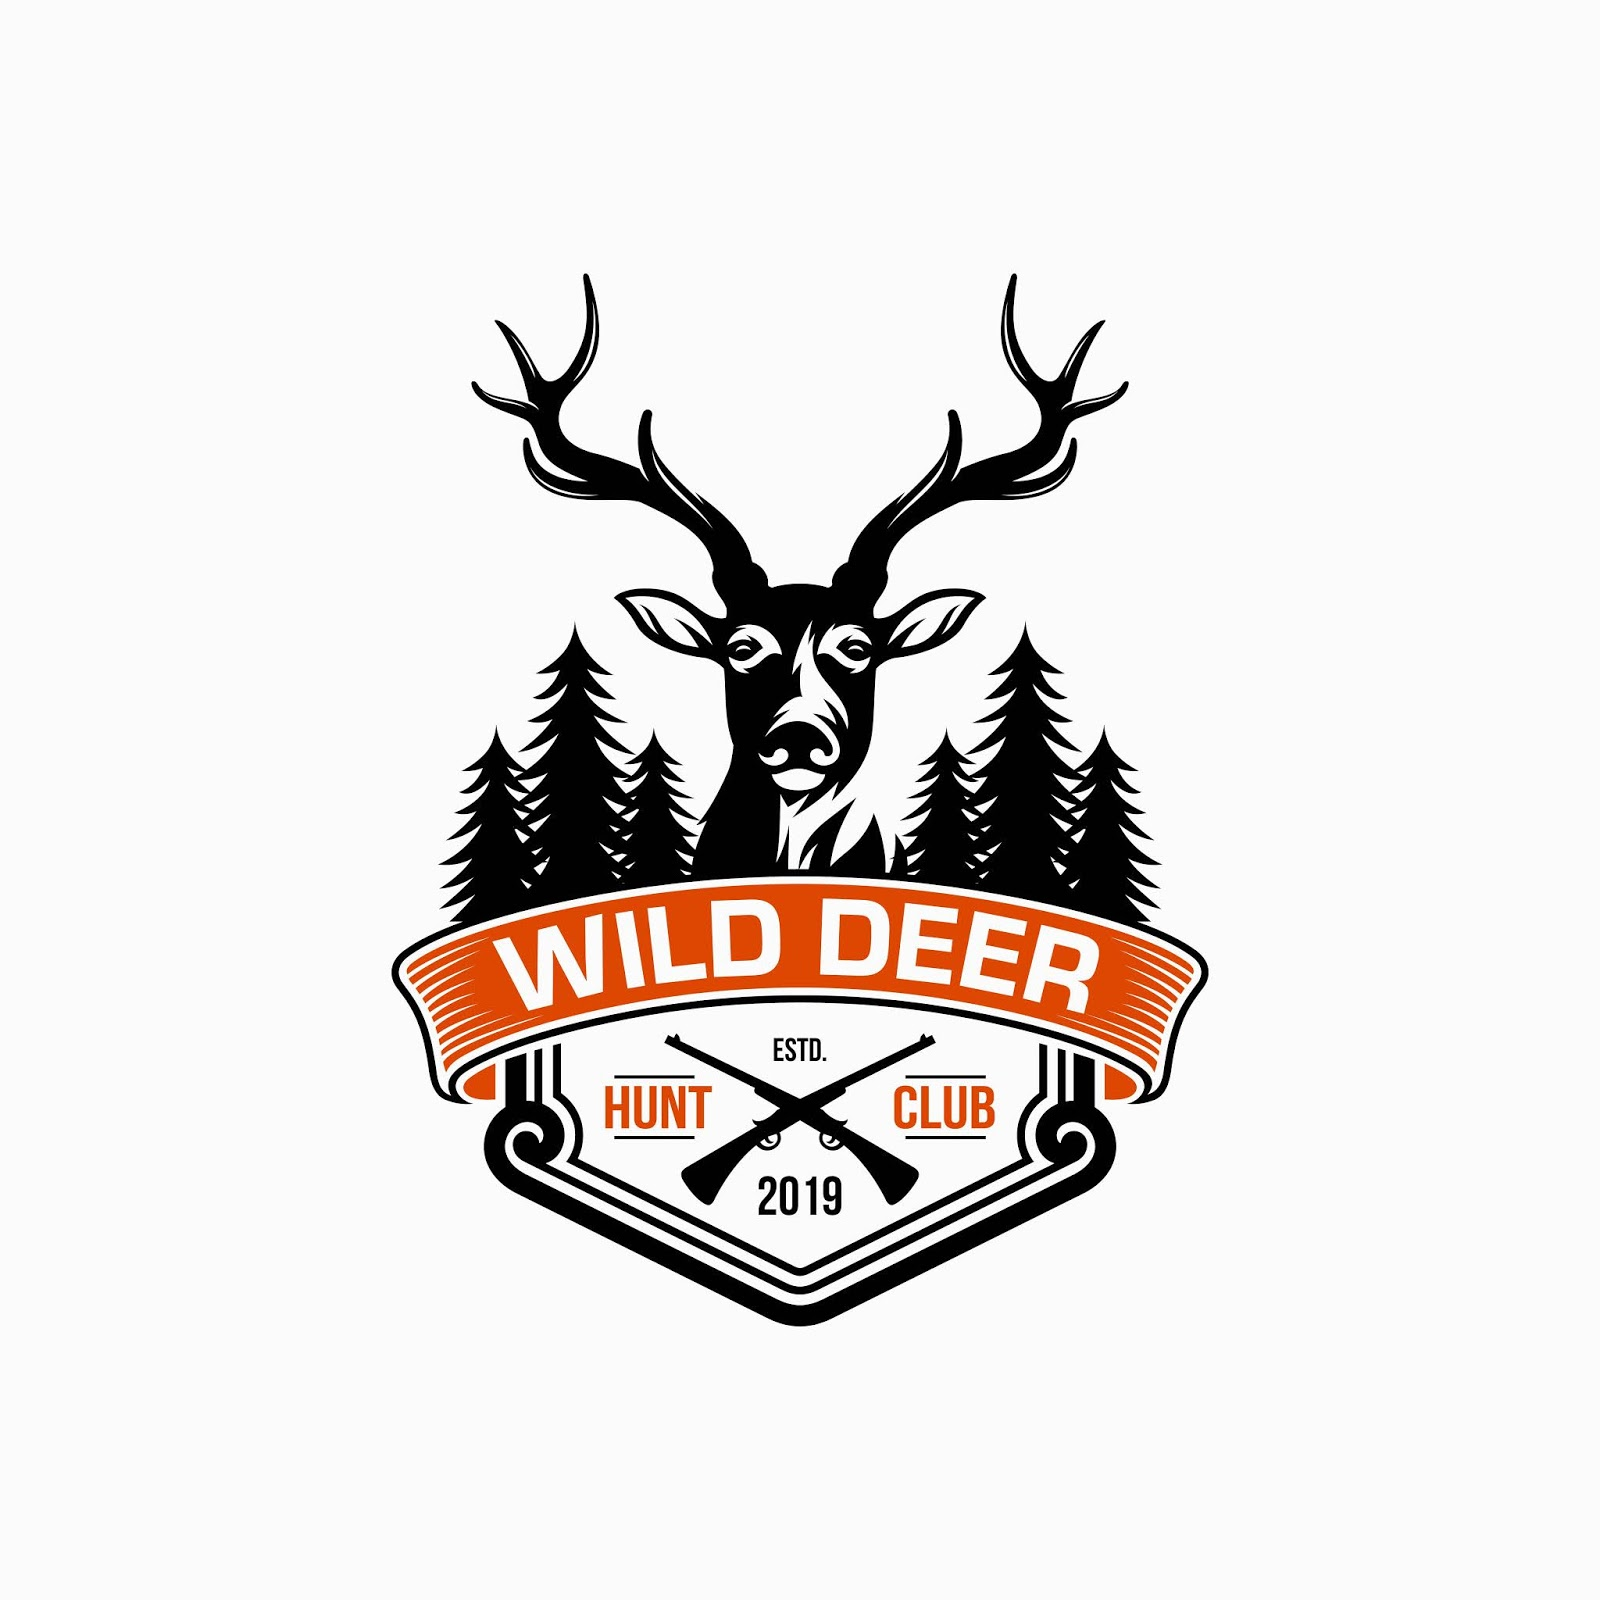 Wild Deer Vintage Logo Design Vector Template Free Download Vector CDR, AI, EPS and PNG Formats